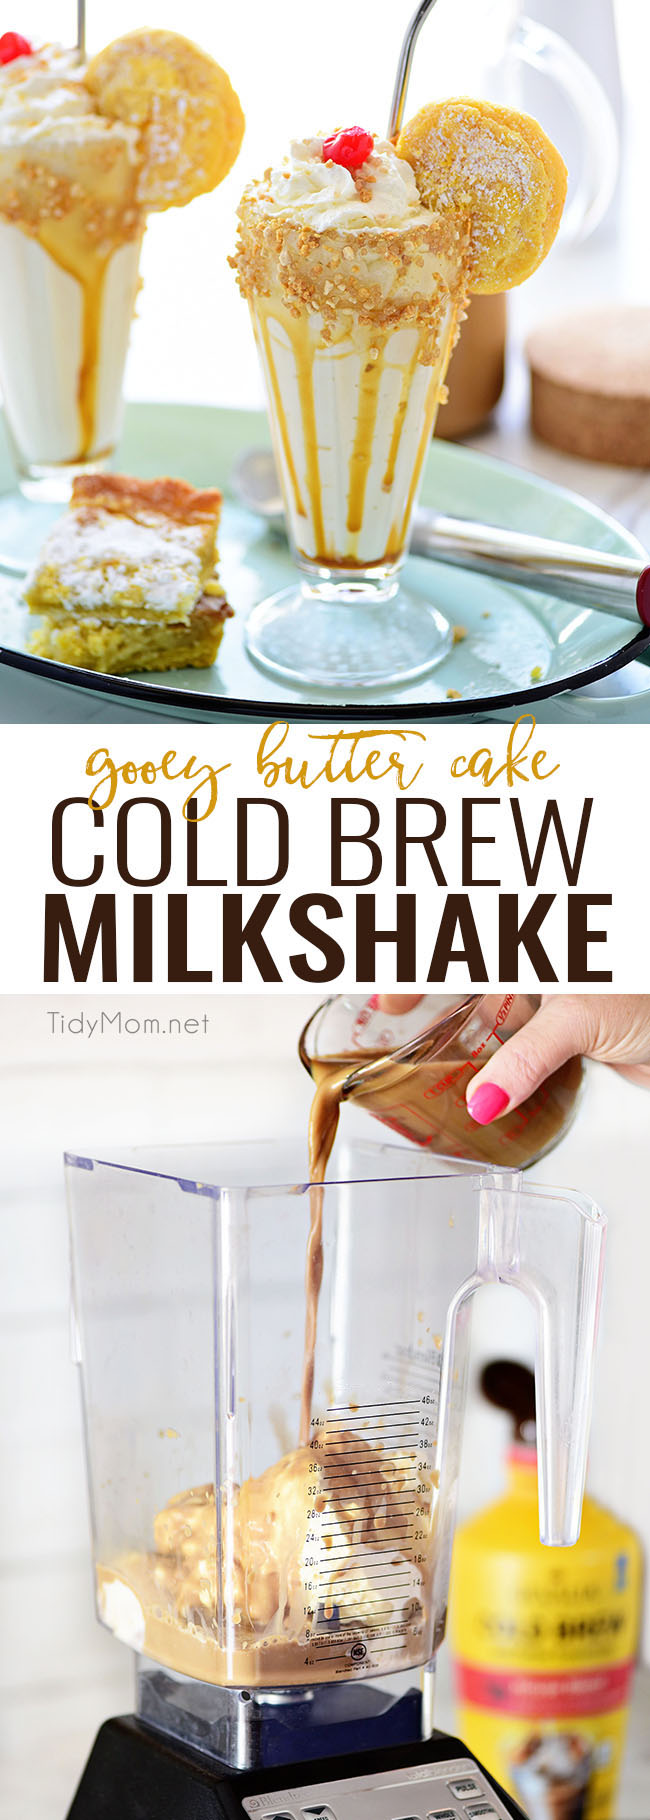 Gooey Butter Cake Cold Brew Milkshake photo collage